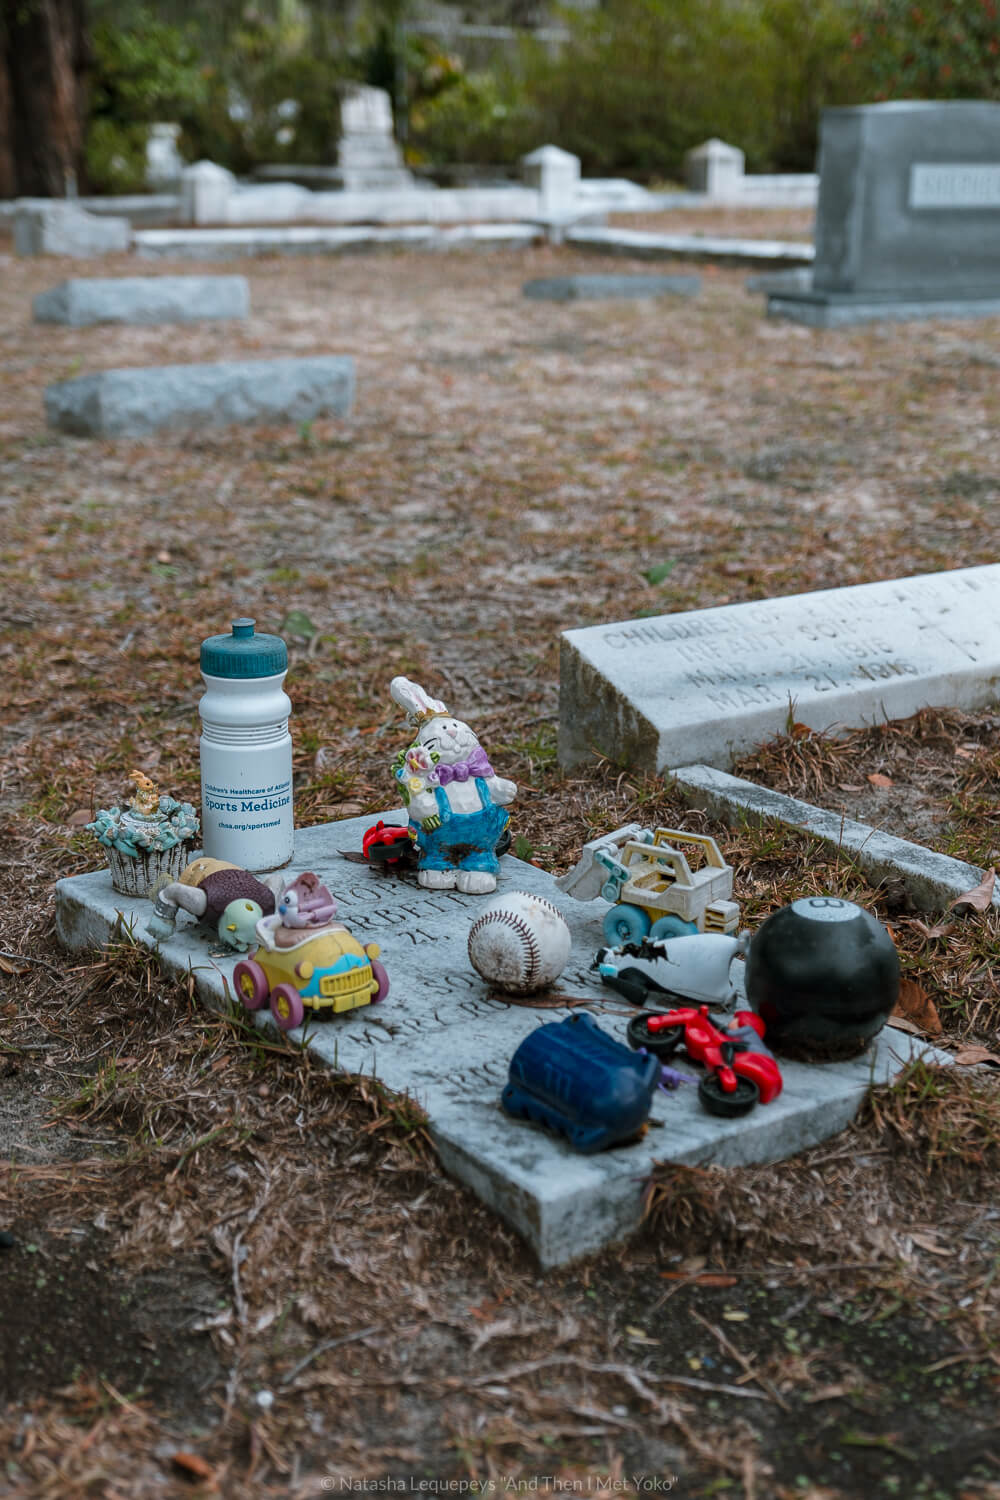 """Children's toys on a grave at Bonaventure Cemetery in Savannah, Georgia. Travel photography and guide by © Natasha Lequepeys for """"And Then I Met Yoko"""". #bonaventurecemetery #savannah #travelguide #travelblog #travelphotography #fujifilm"""